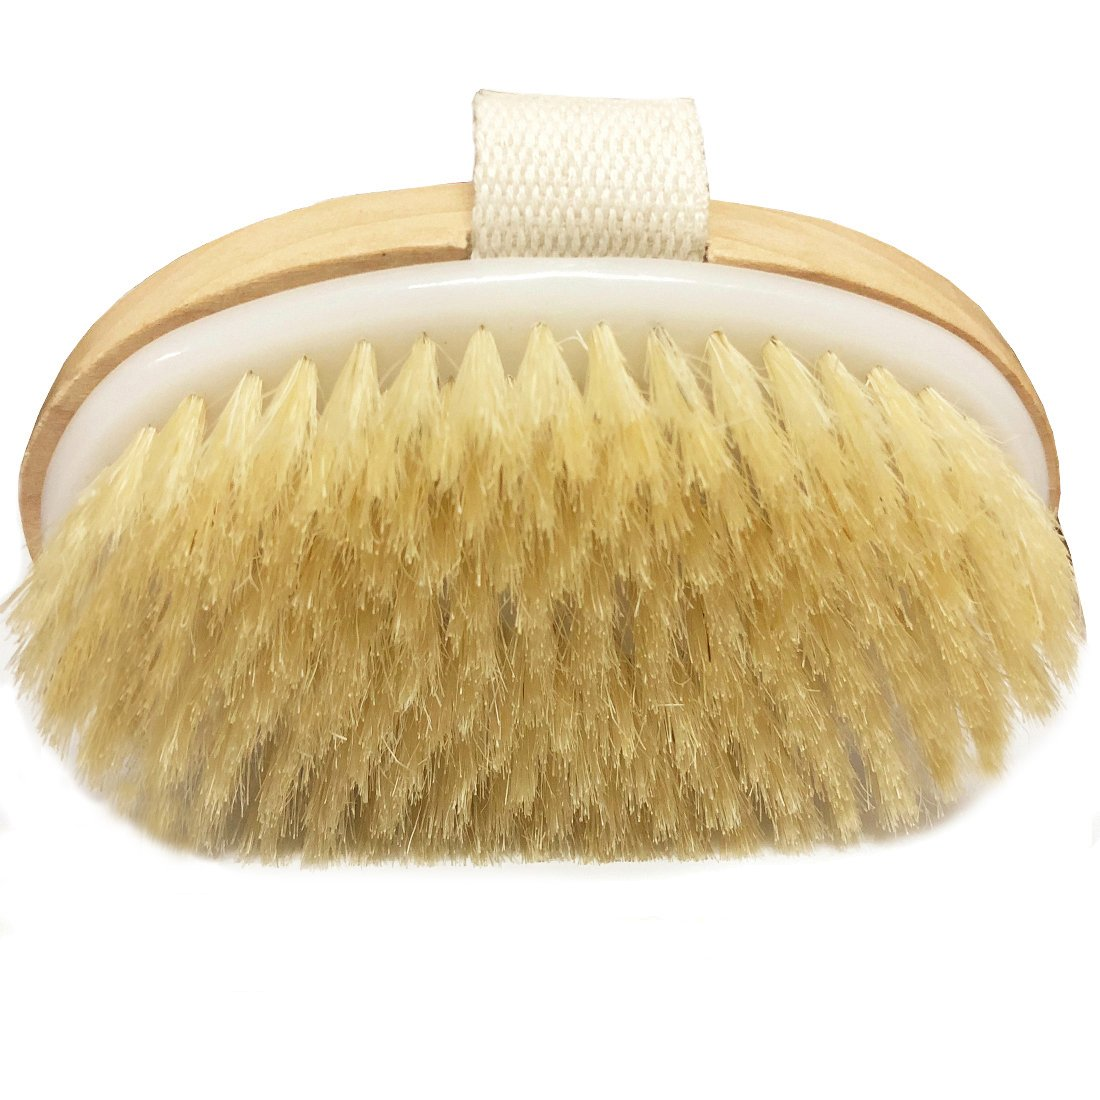 Dry Brushing Body Brush - Exfoliating Brush - Natural Bristle Dry Brush for Remove Dead Skin Toxins, Cellulite Treatment, Improves Lymphatic Functions, Exfoliates, Stimulates Blood Circulation Angel Kiss